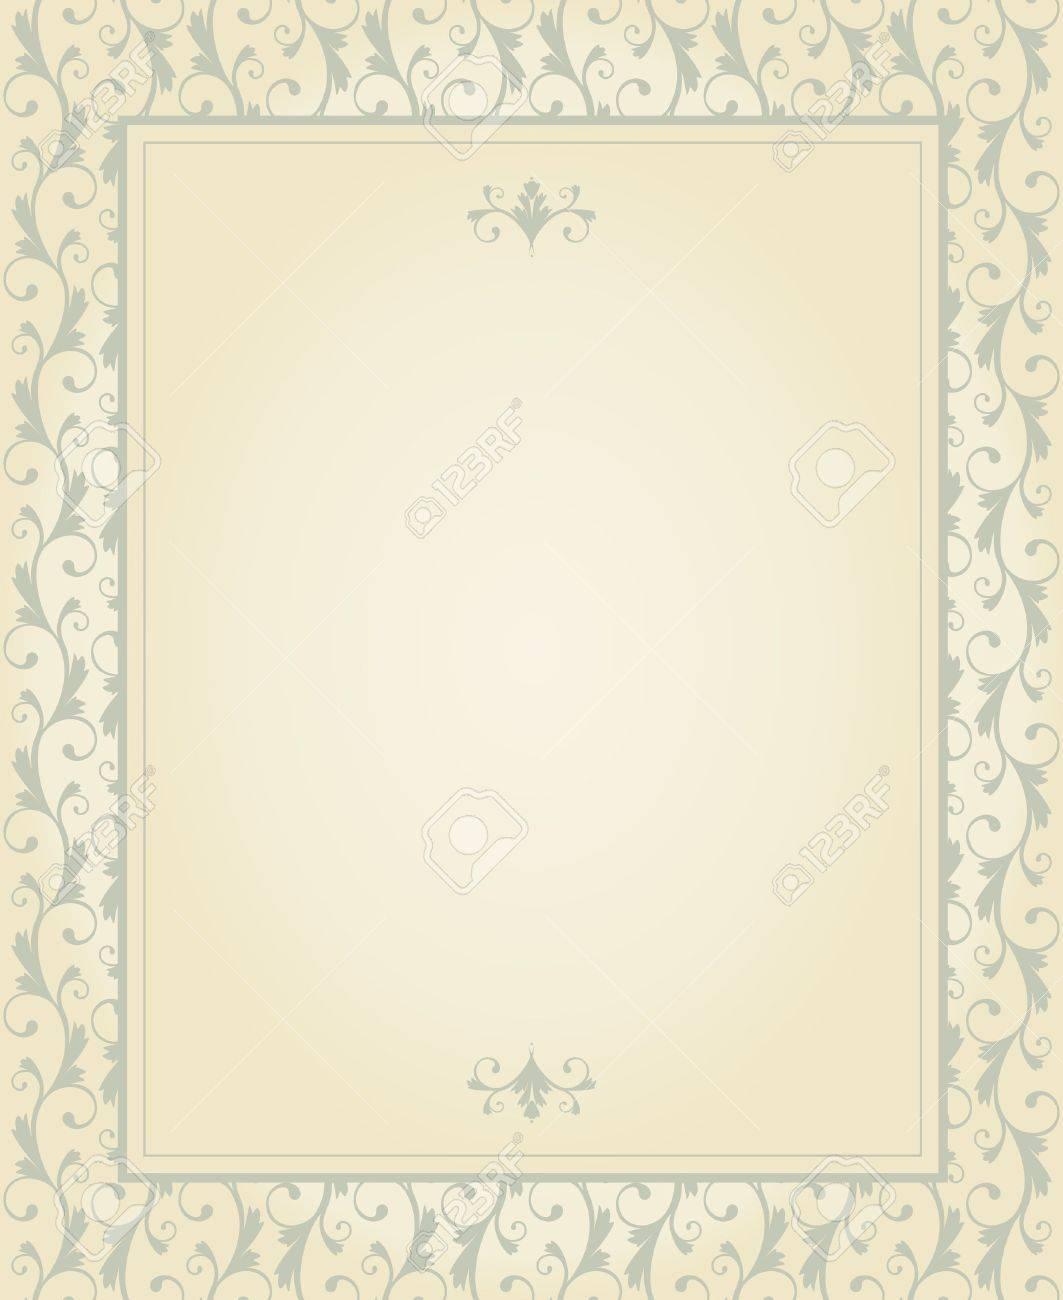 Greeting Card Template In Vintage Style Elements Are Grouped – Birthday Card Layout